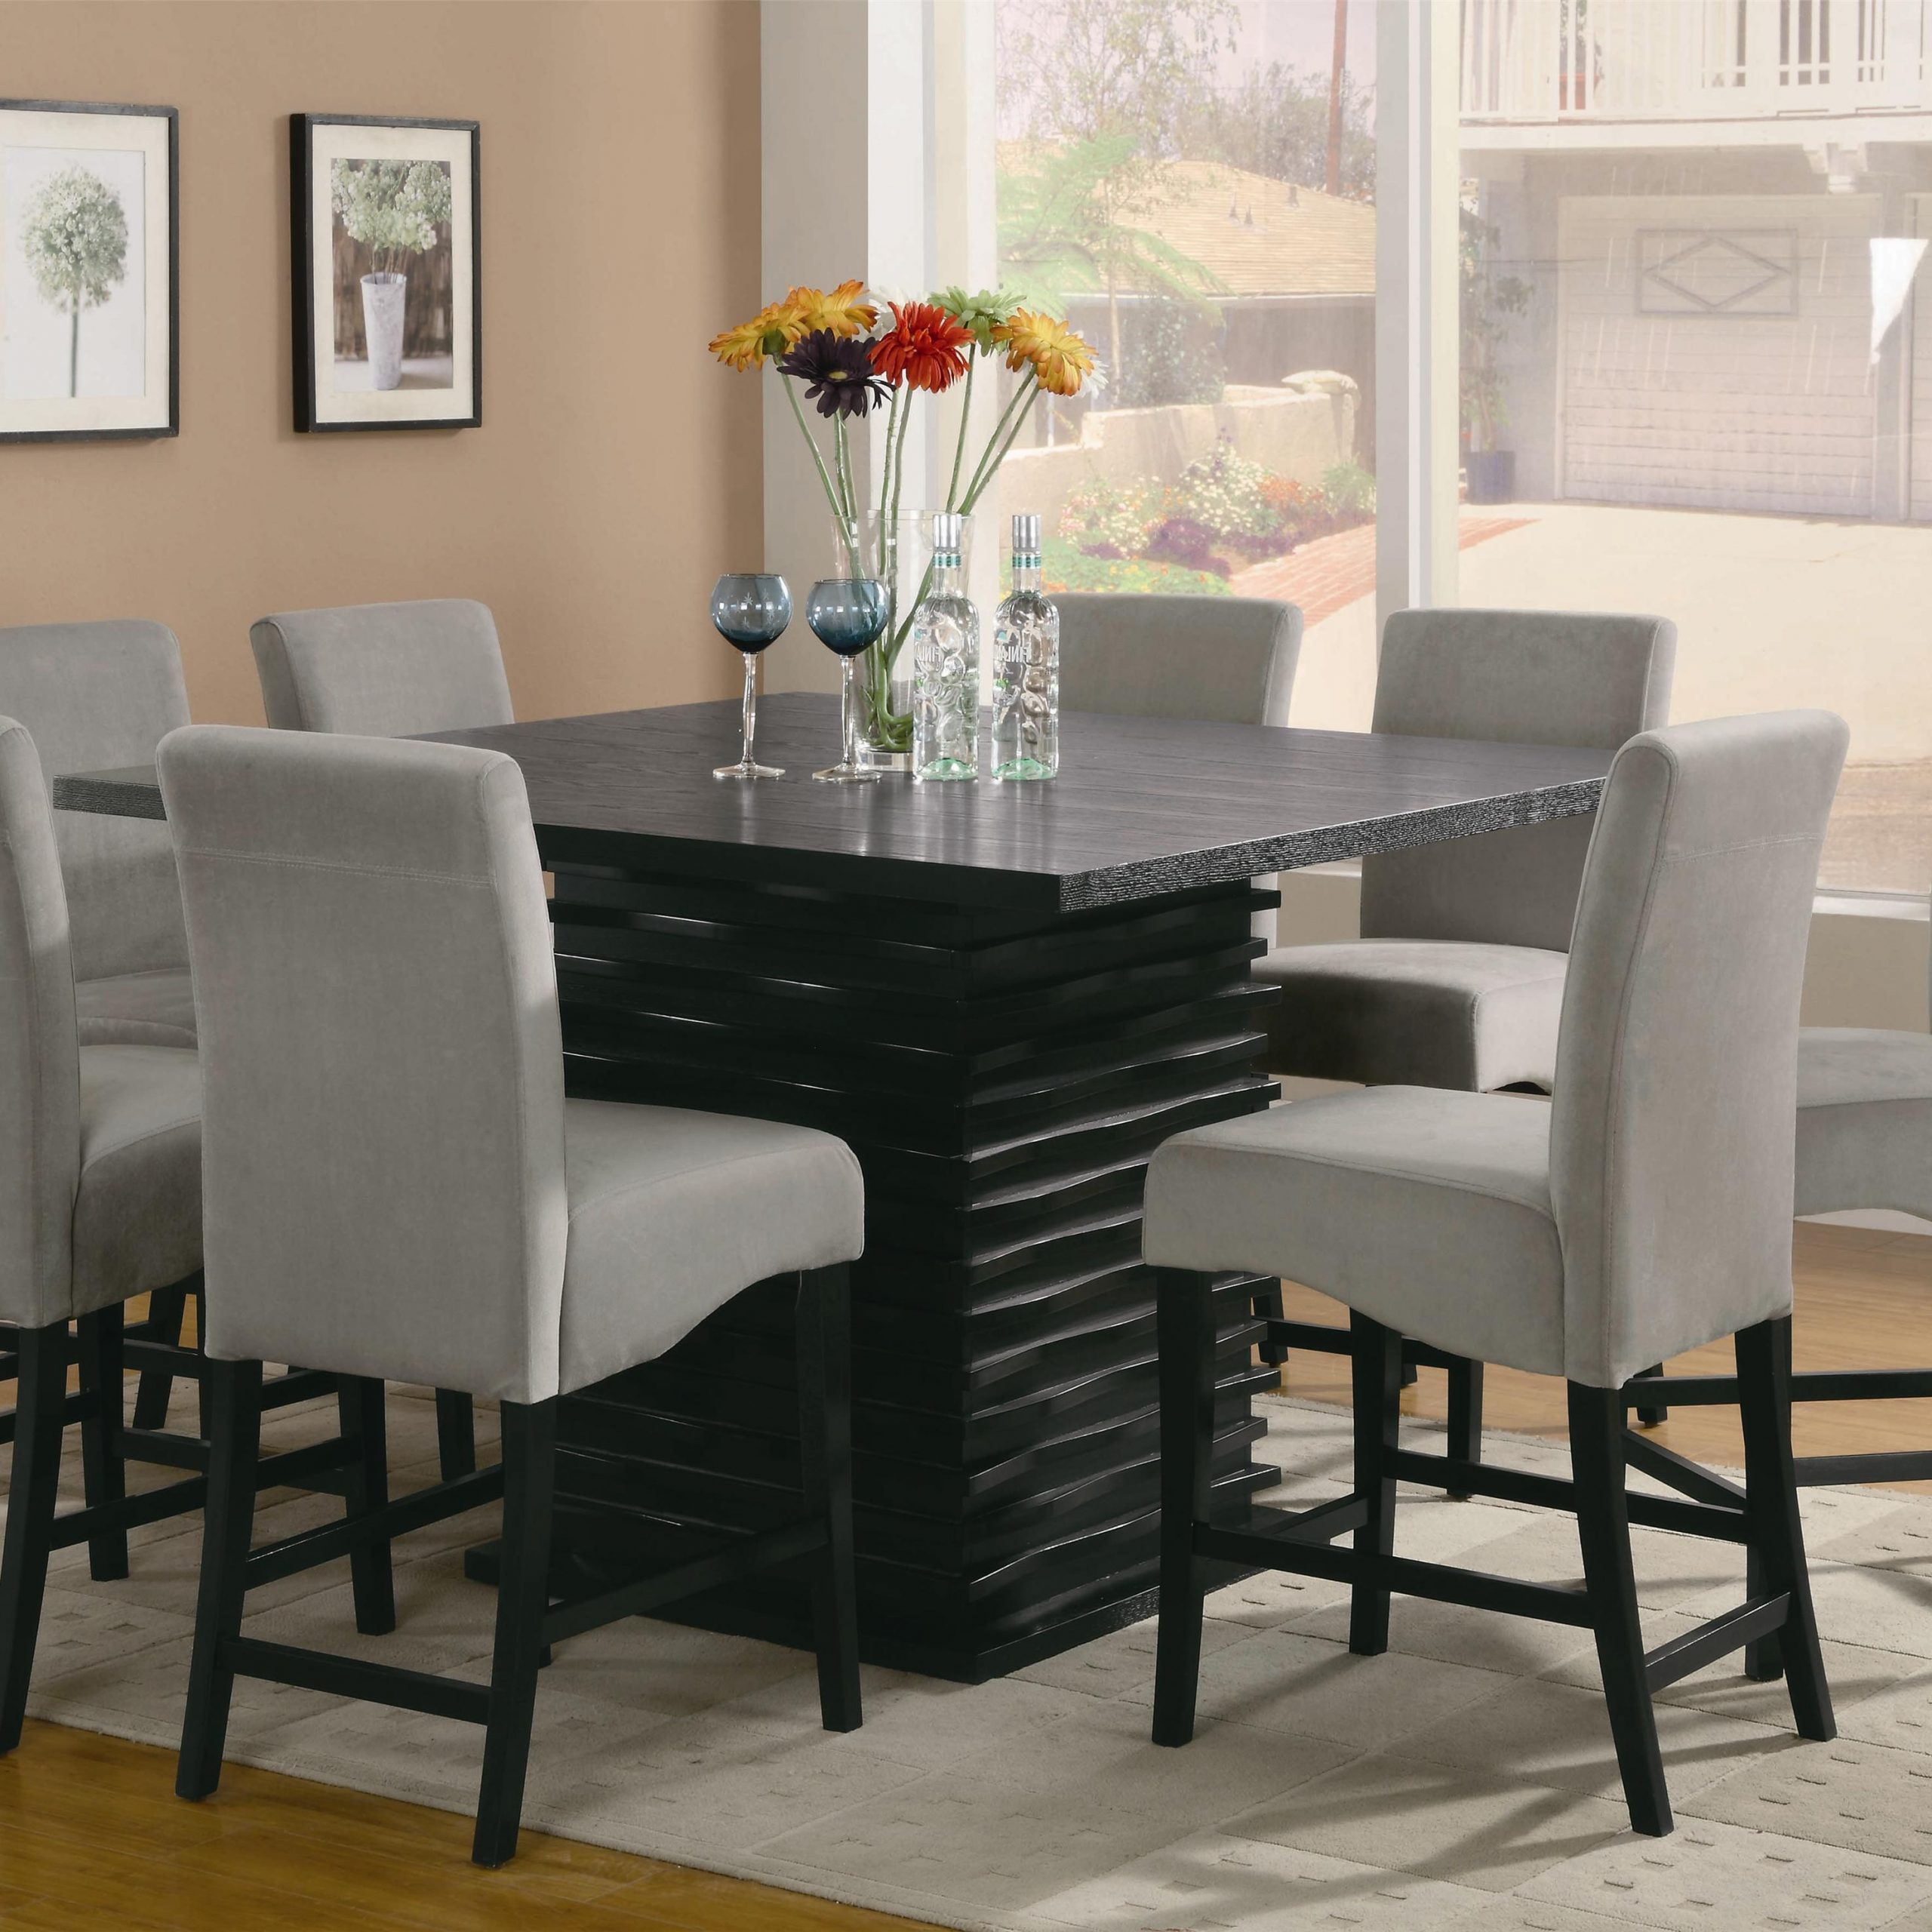 2018 Bistro Transitional 4 Seating Square Dining Tables With Stanton 9 Piece Table And Chair Set (View 2 of 30)